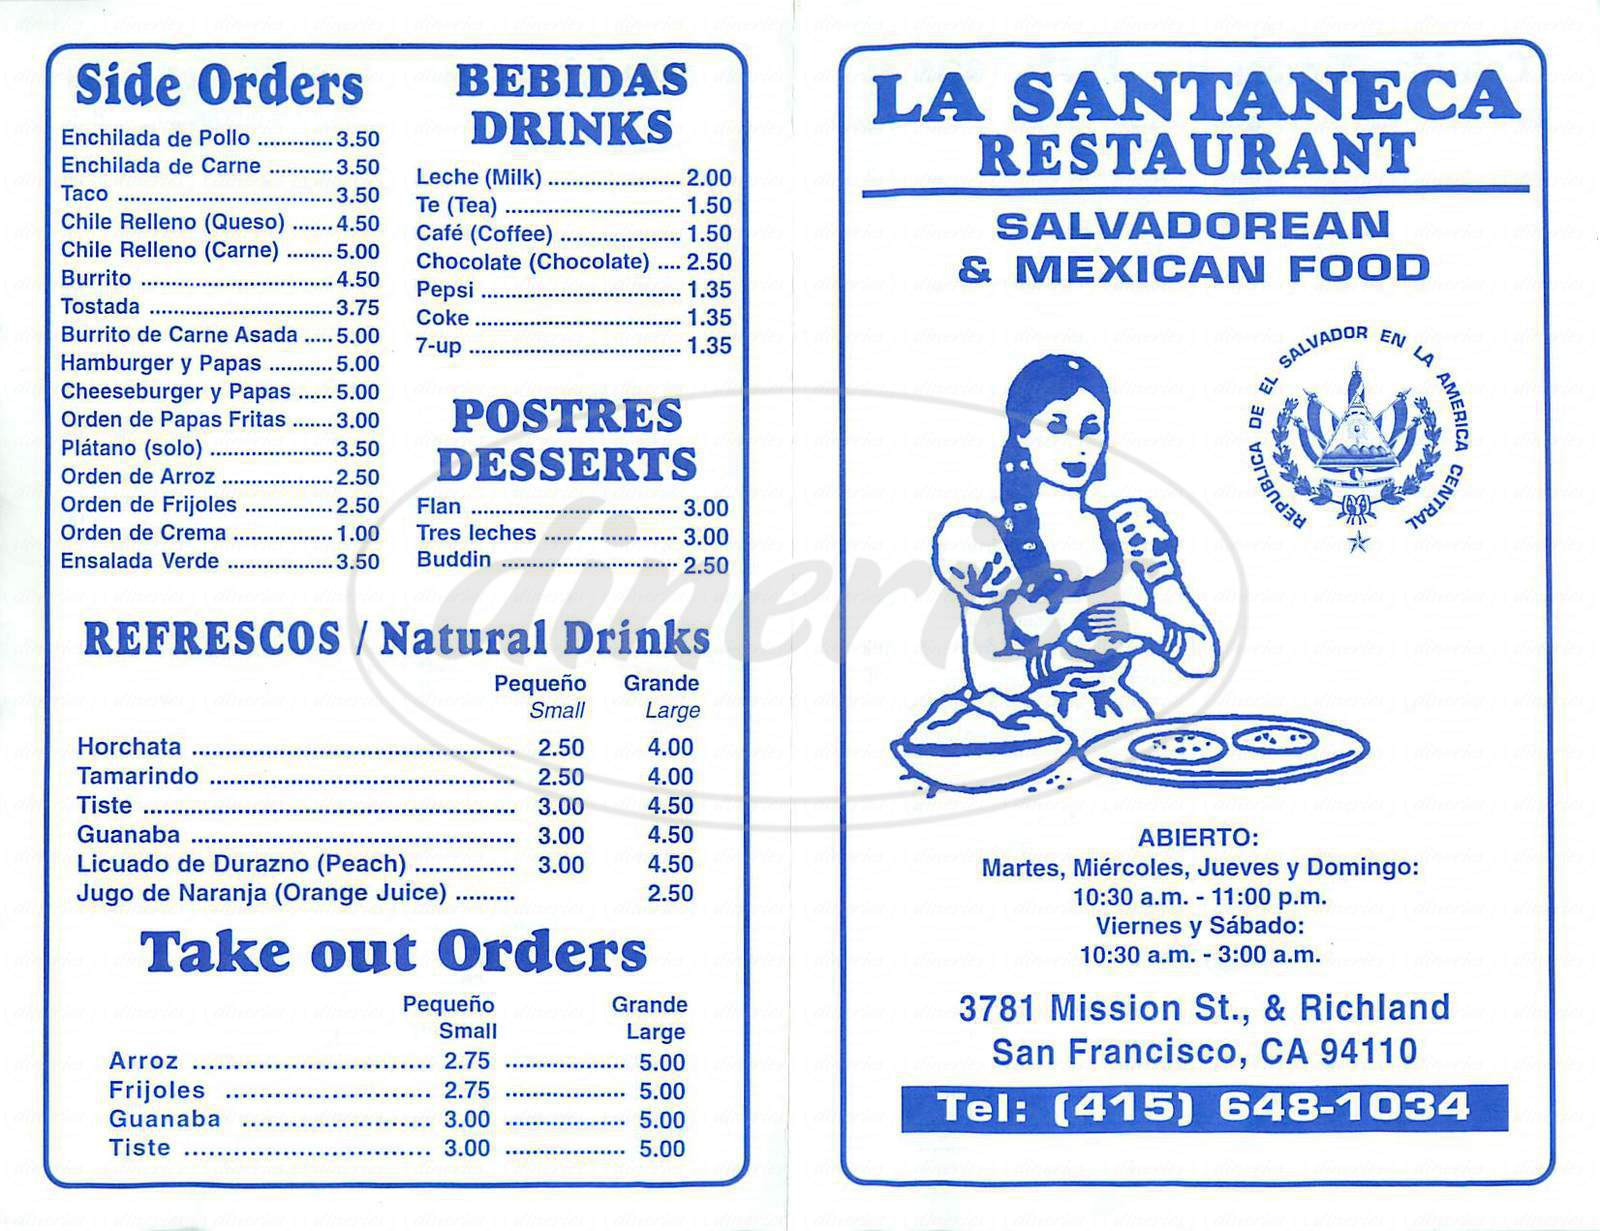 menu for La Santaneca